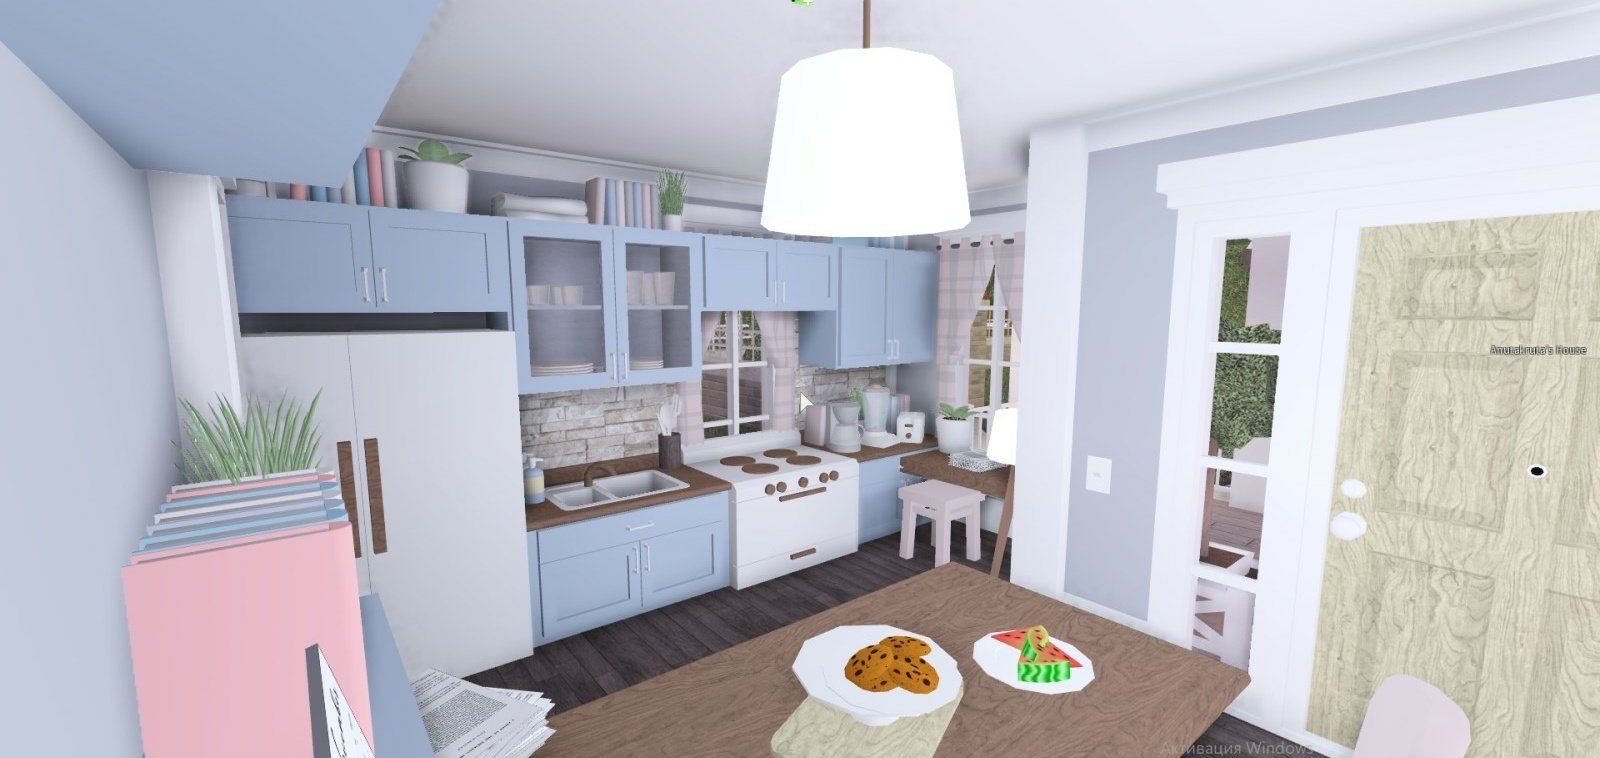 cute kitty on in 2020 Pastel house, Building a house, House